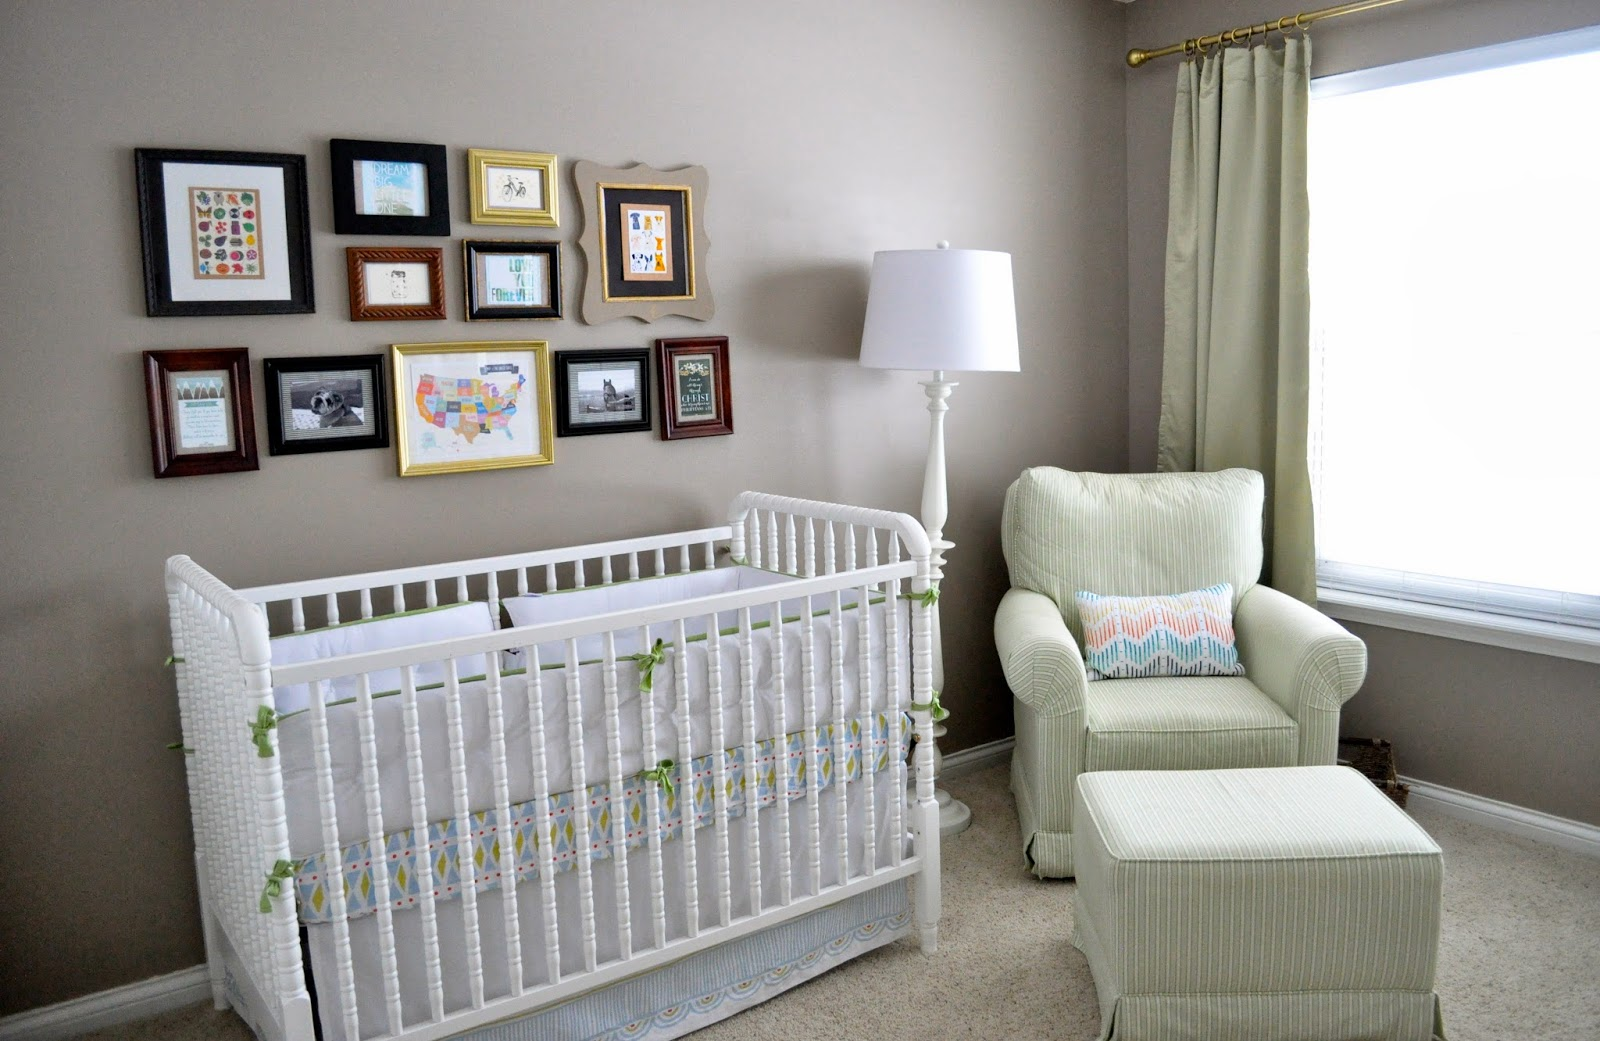 Not Sure If You Are Stuck On Behr But I Just Did Sw Mega Greige In My Son S Nursery And Love It Also